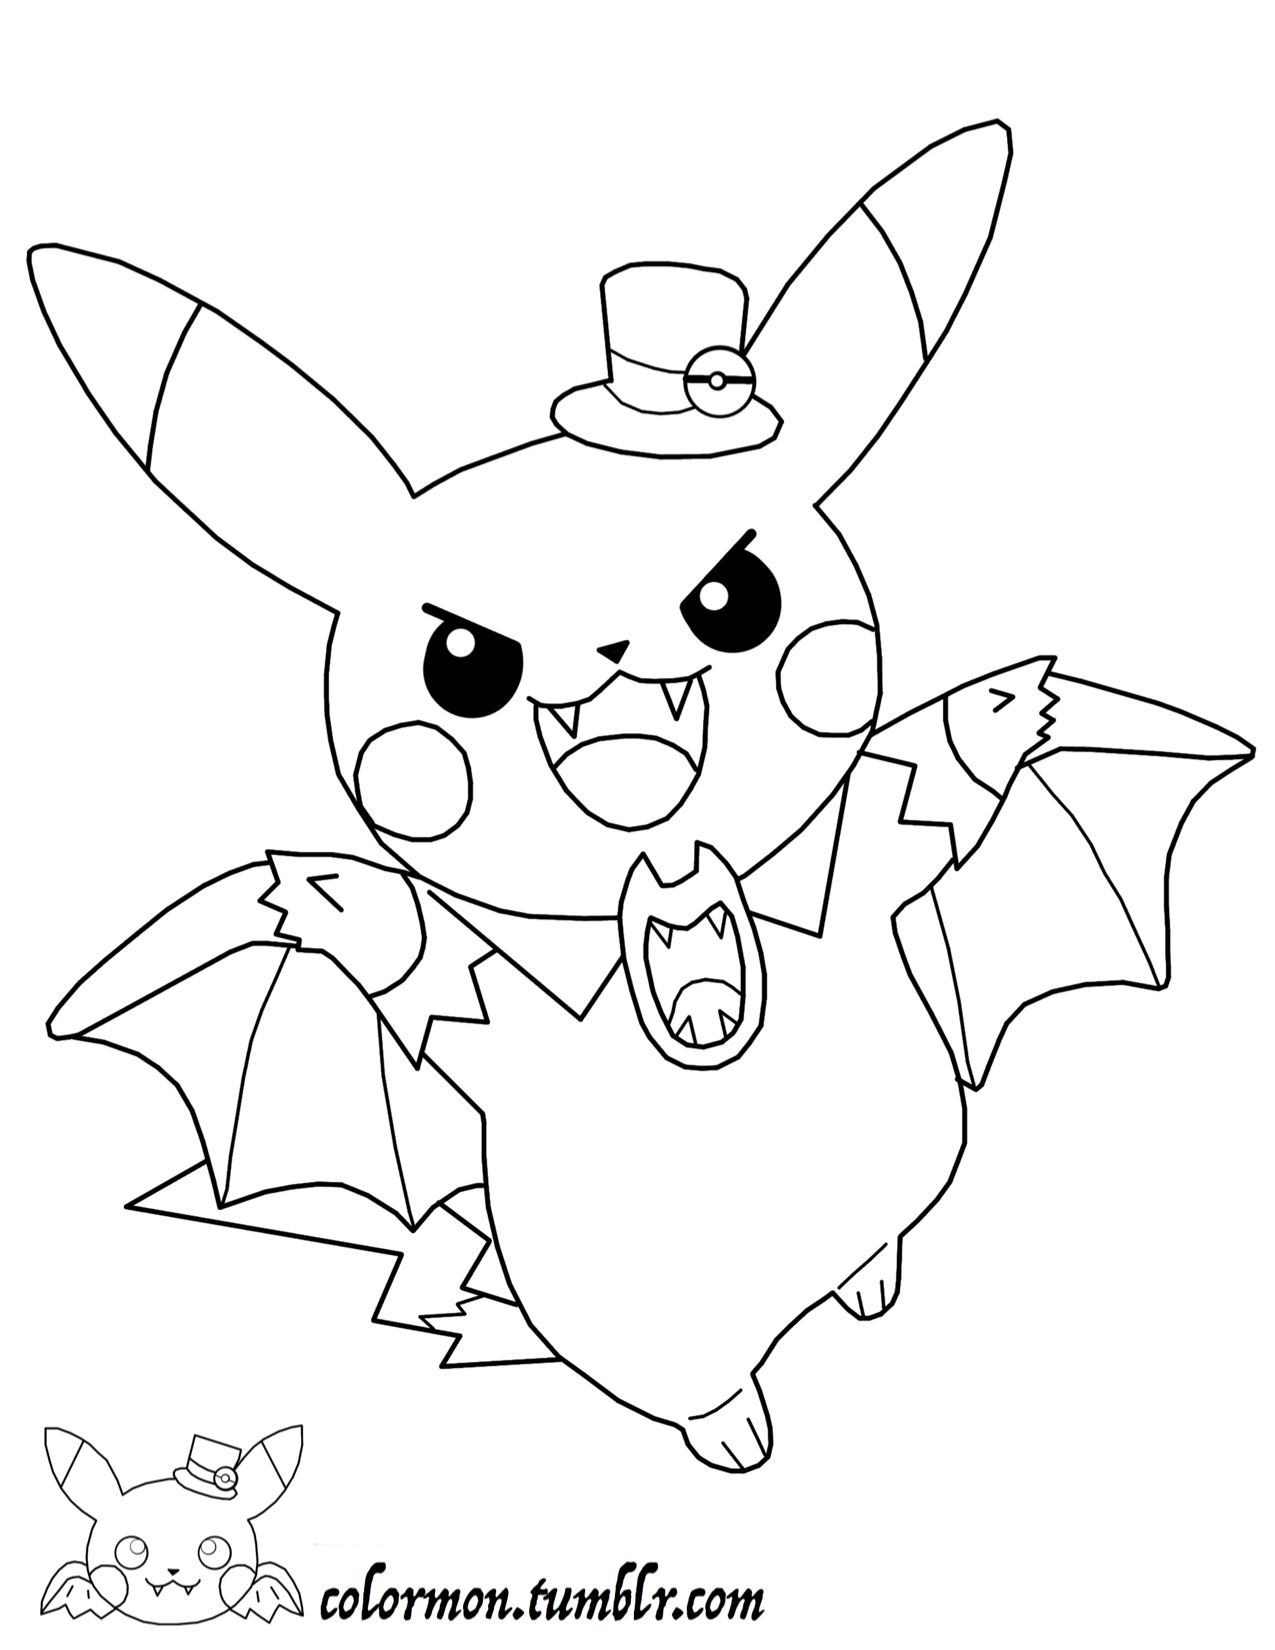 zombie pikachu coloring page cartoon zombies colouring pages page 2 pikachu page zombie pikachu coloring